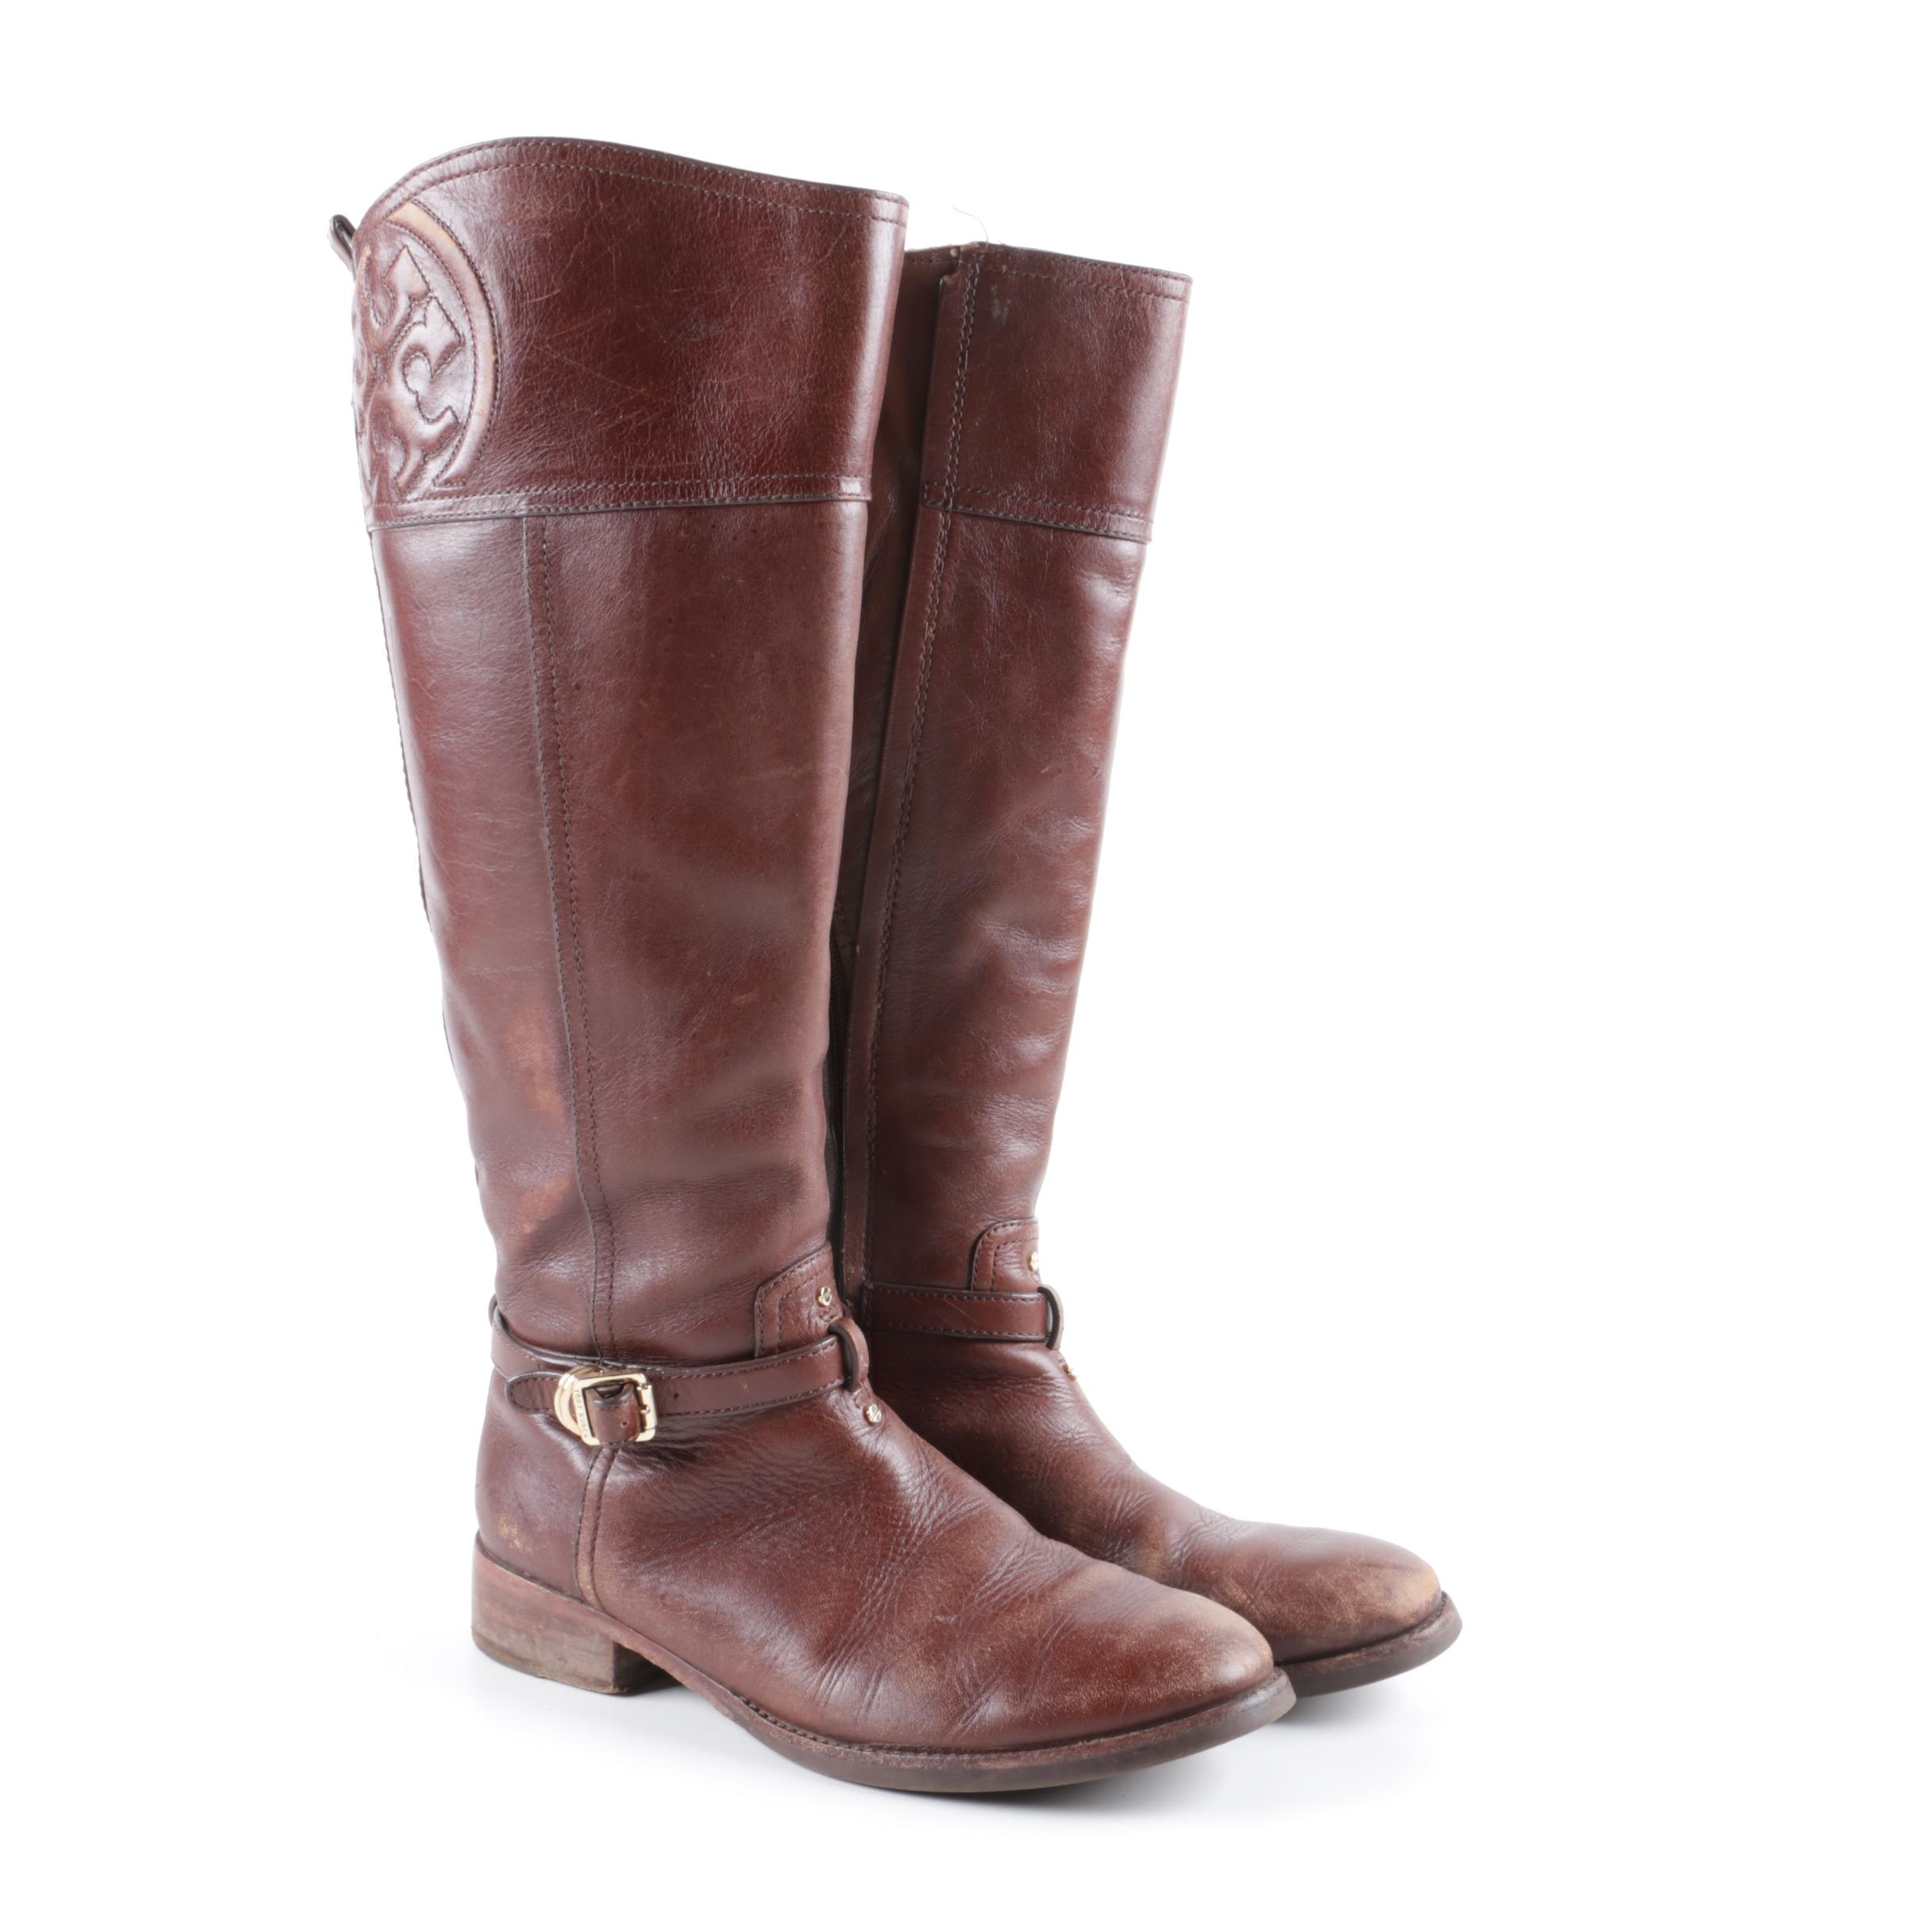 Tory Burch Marlene Brown Leather Riding Boots